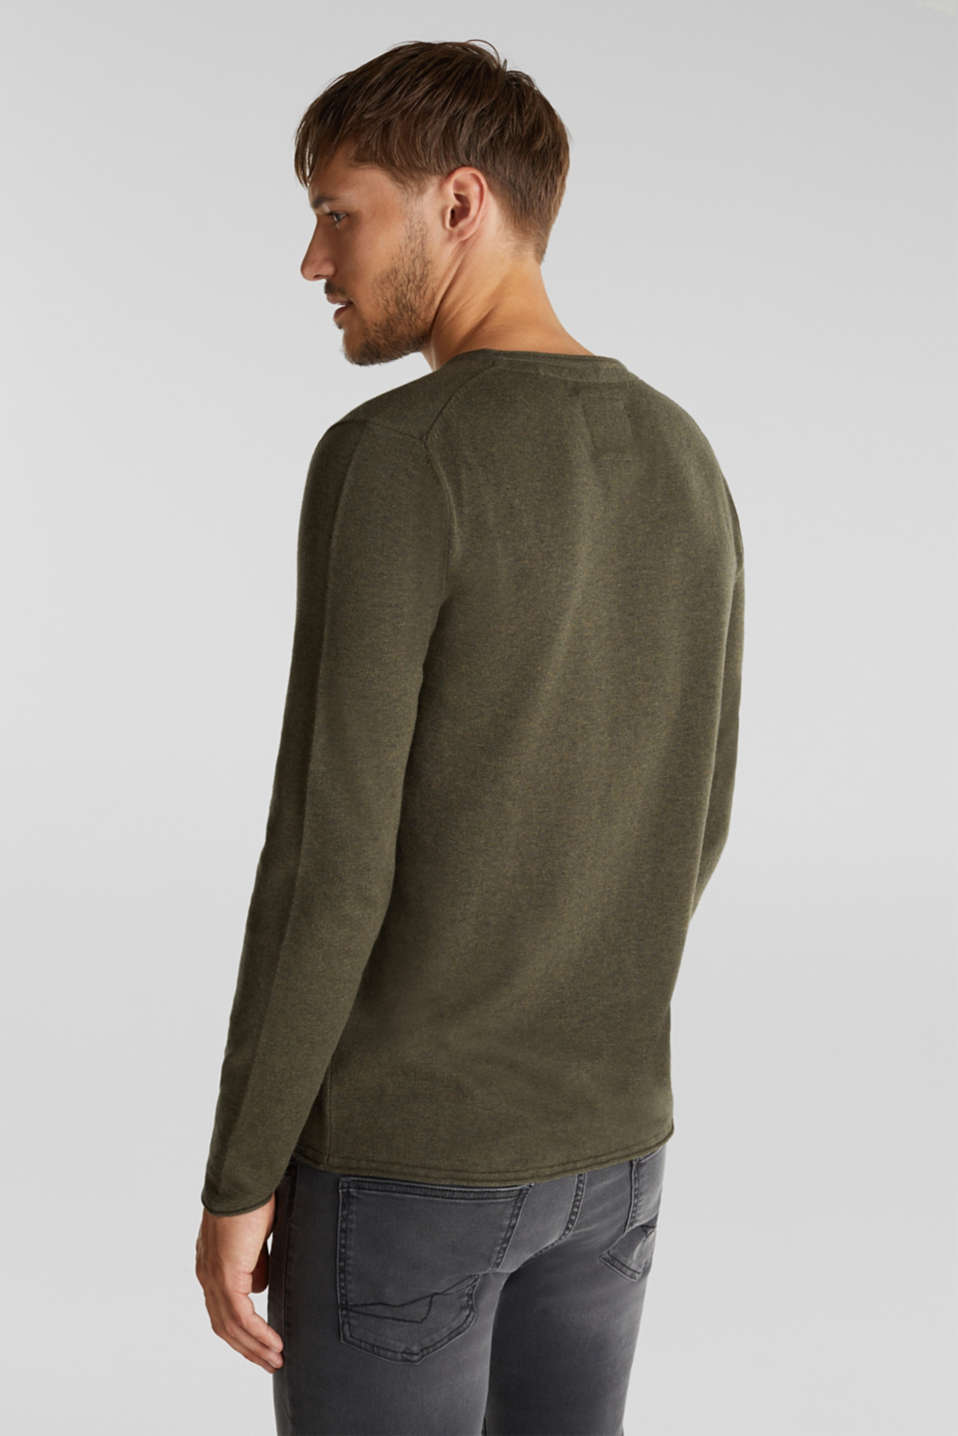 Fine knit cotton jumper, KHAKI GREEN, detail image number 3